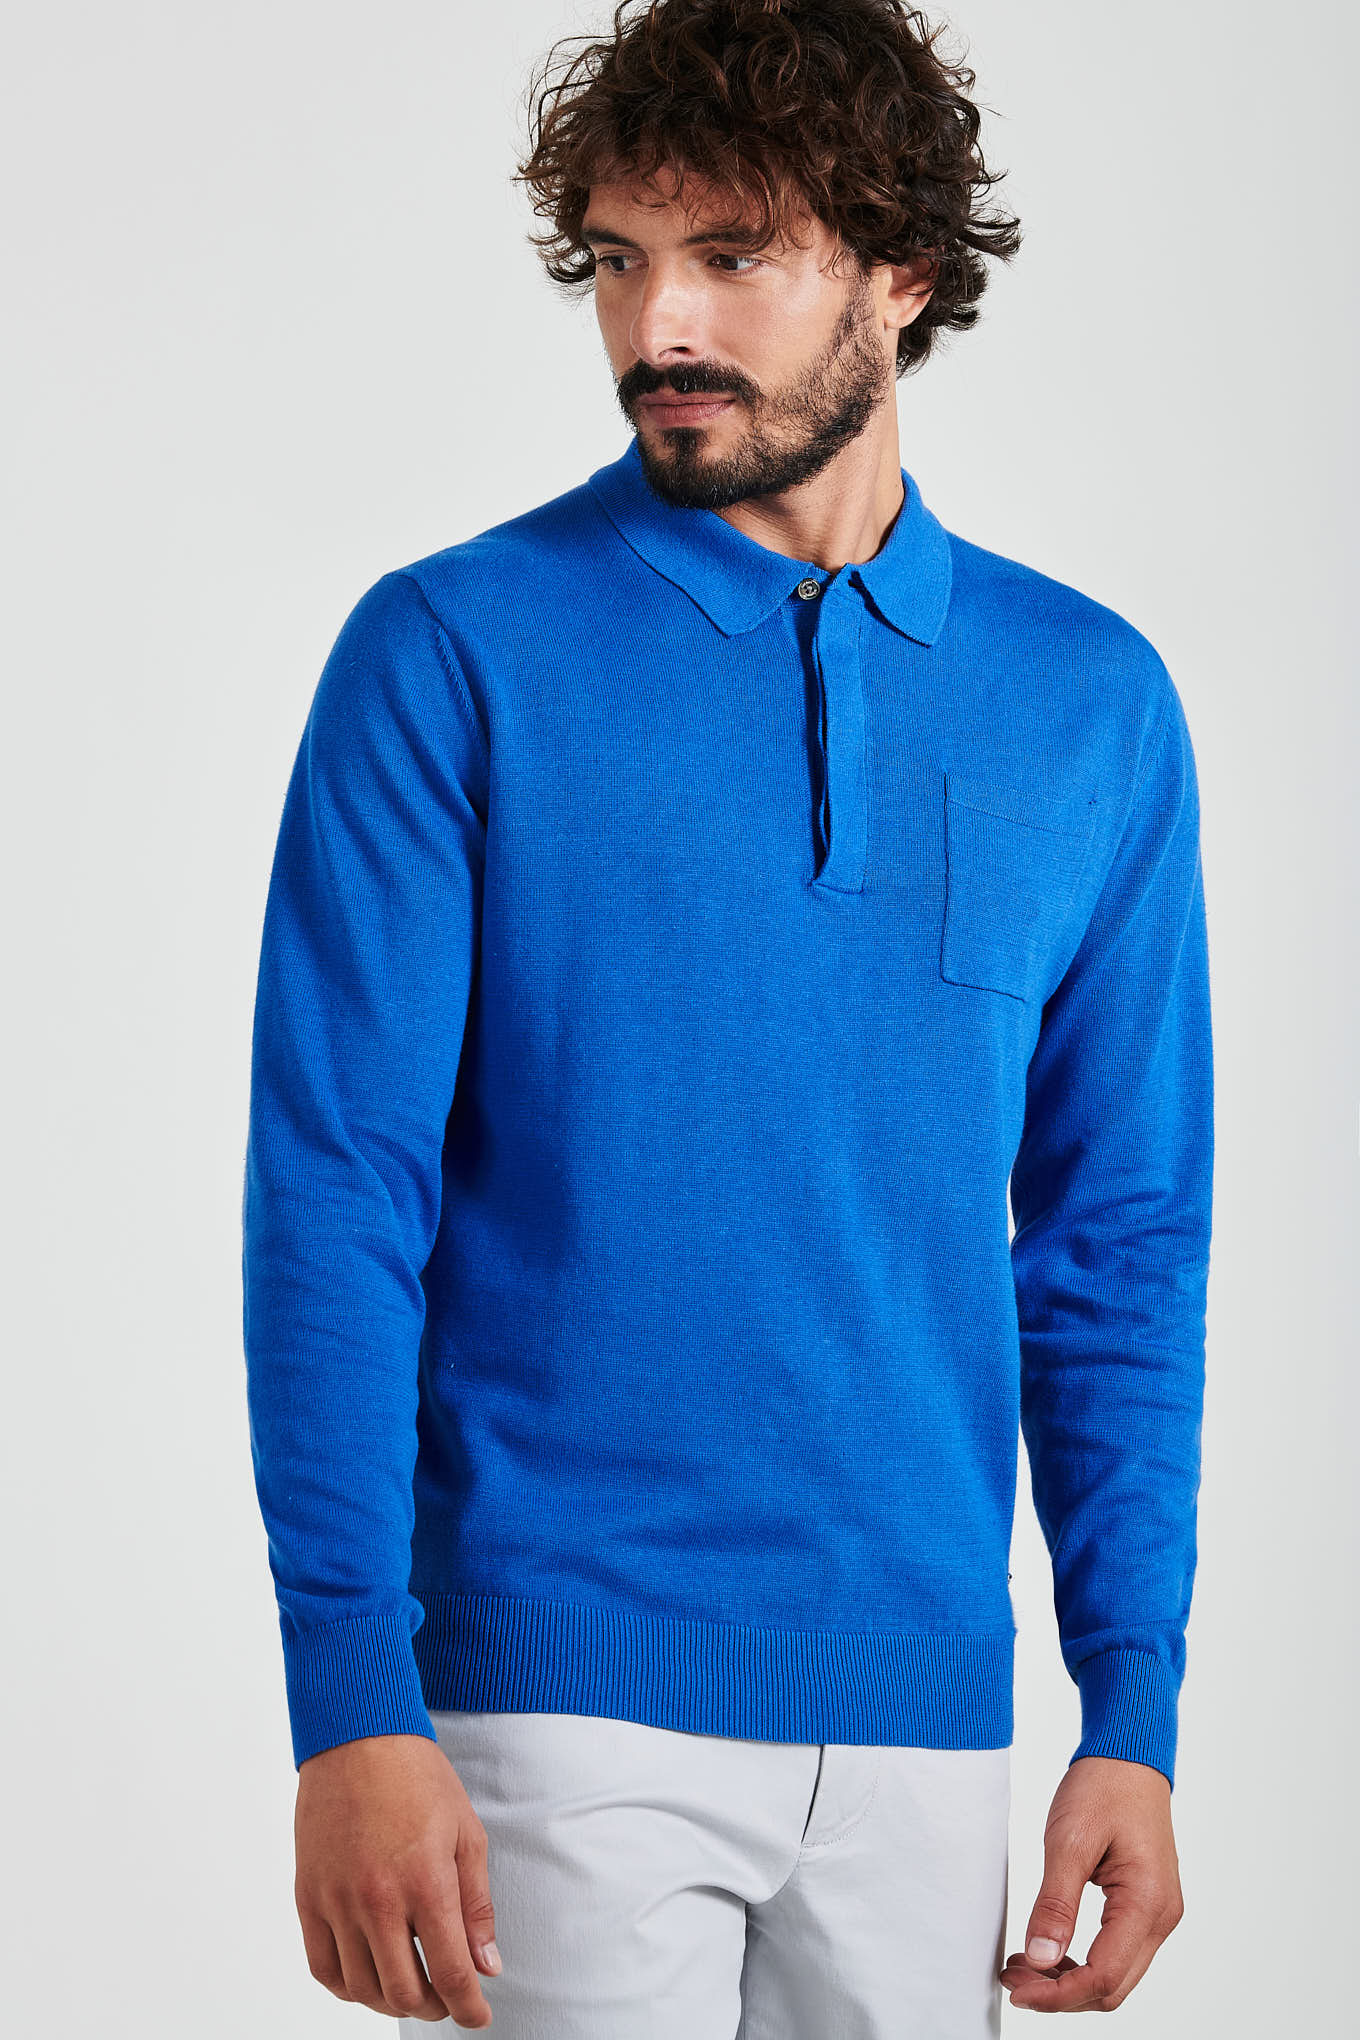 Sweater Medium Blue Casual Man